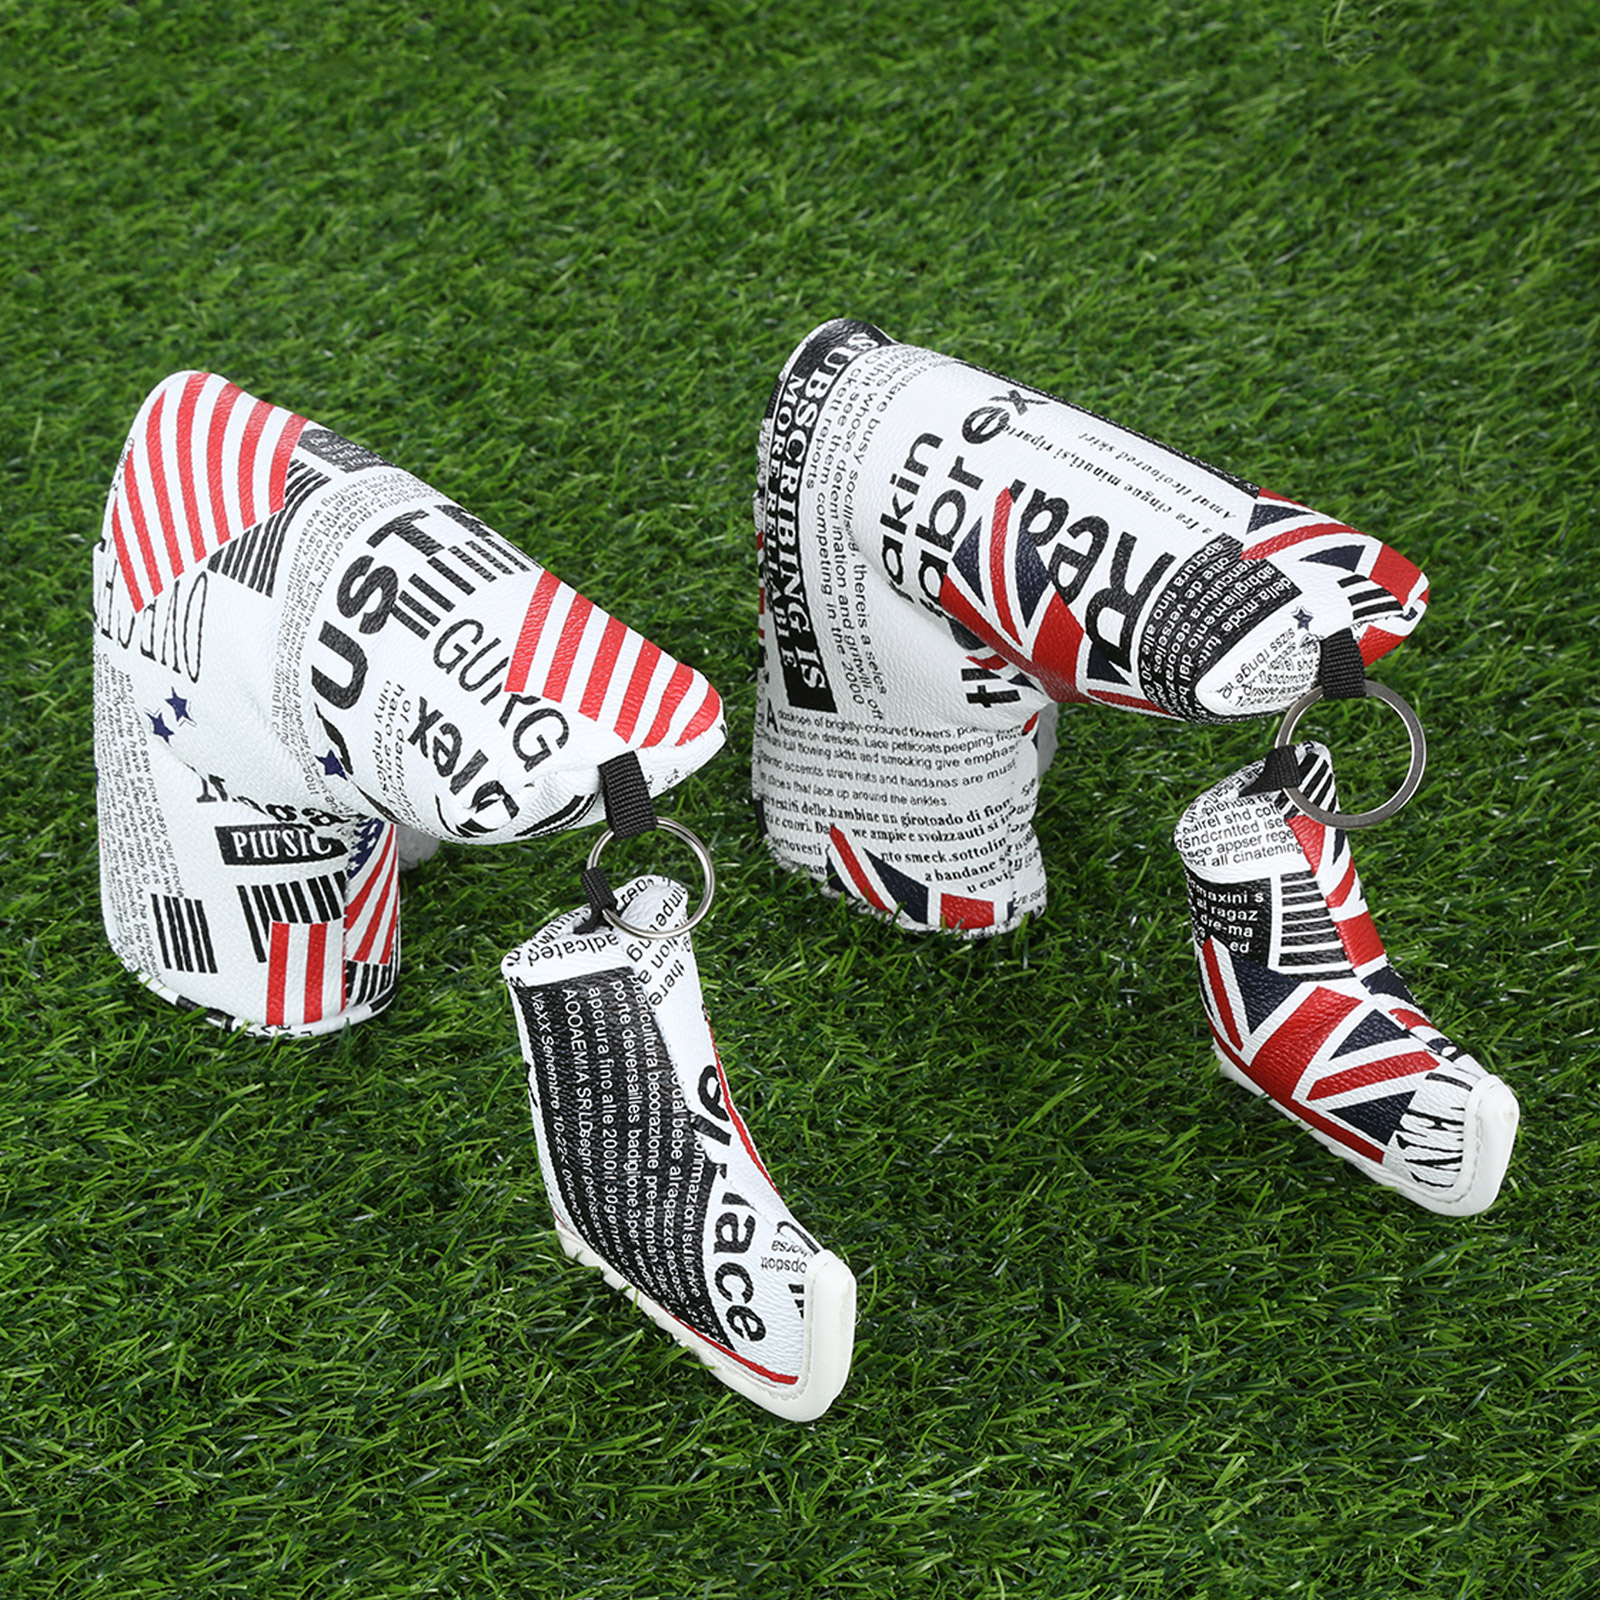 1Pc UK Flag/US Flag Leather Golf Putter Cover Protect Headcover For All Blade/Anser Style Putters Cover Golfer Club Heads Covers